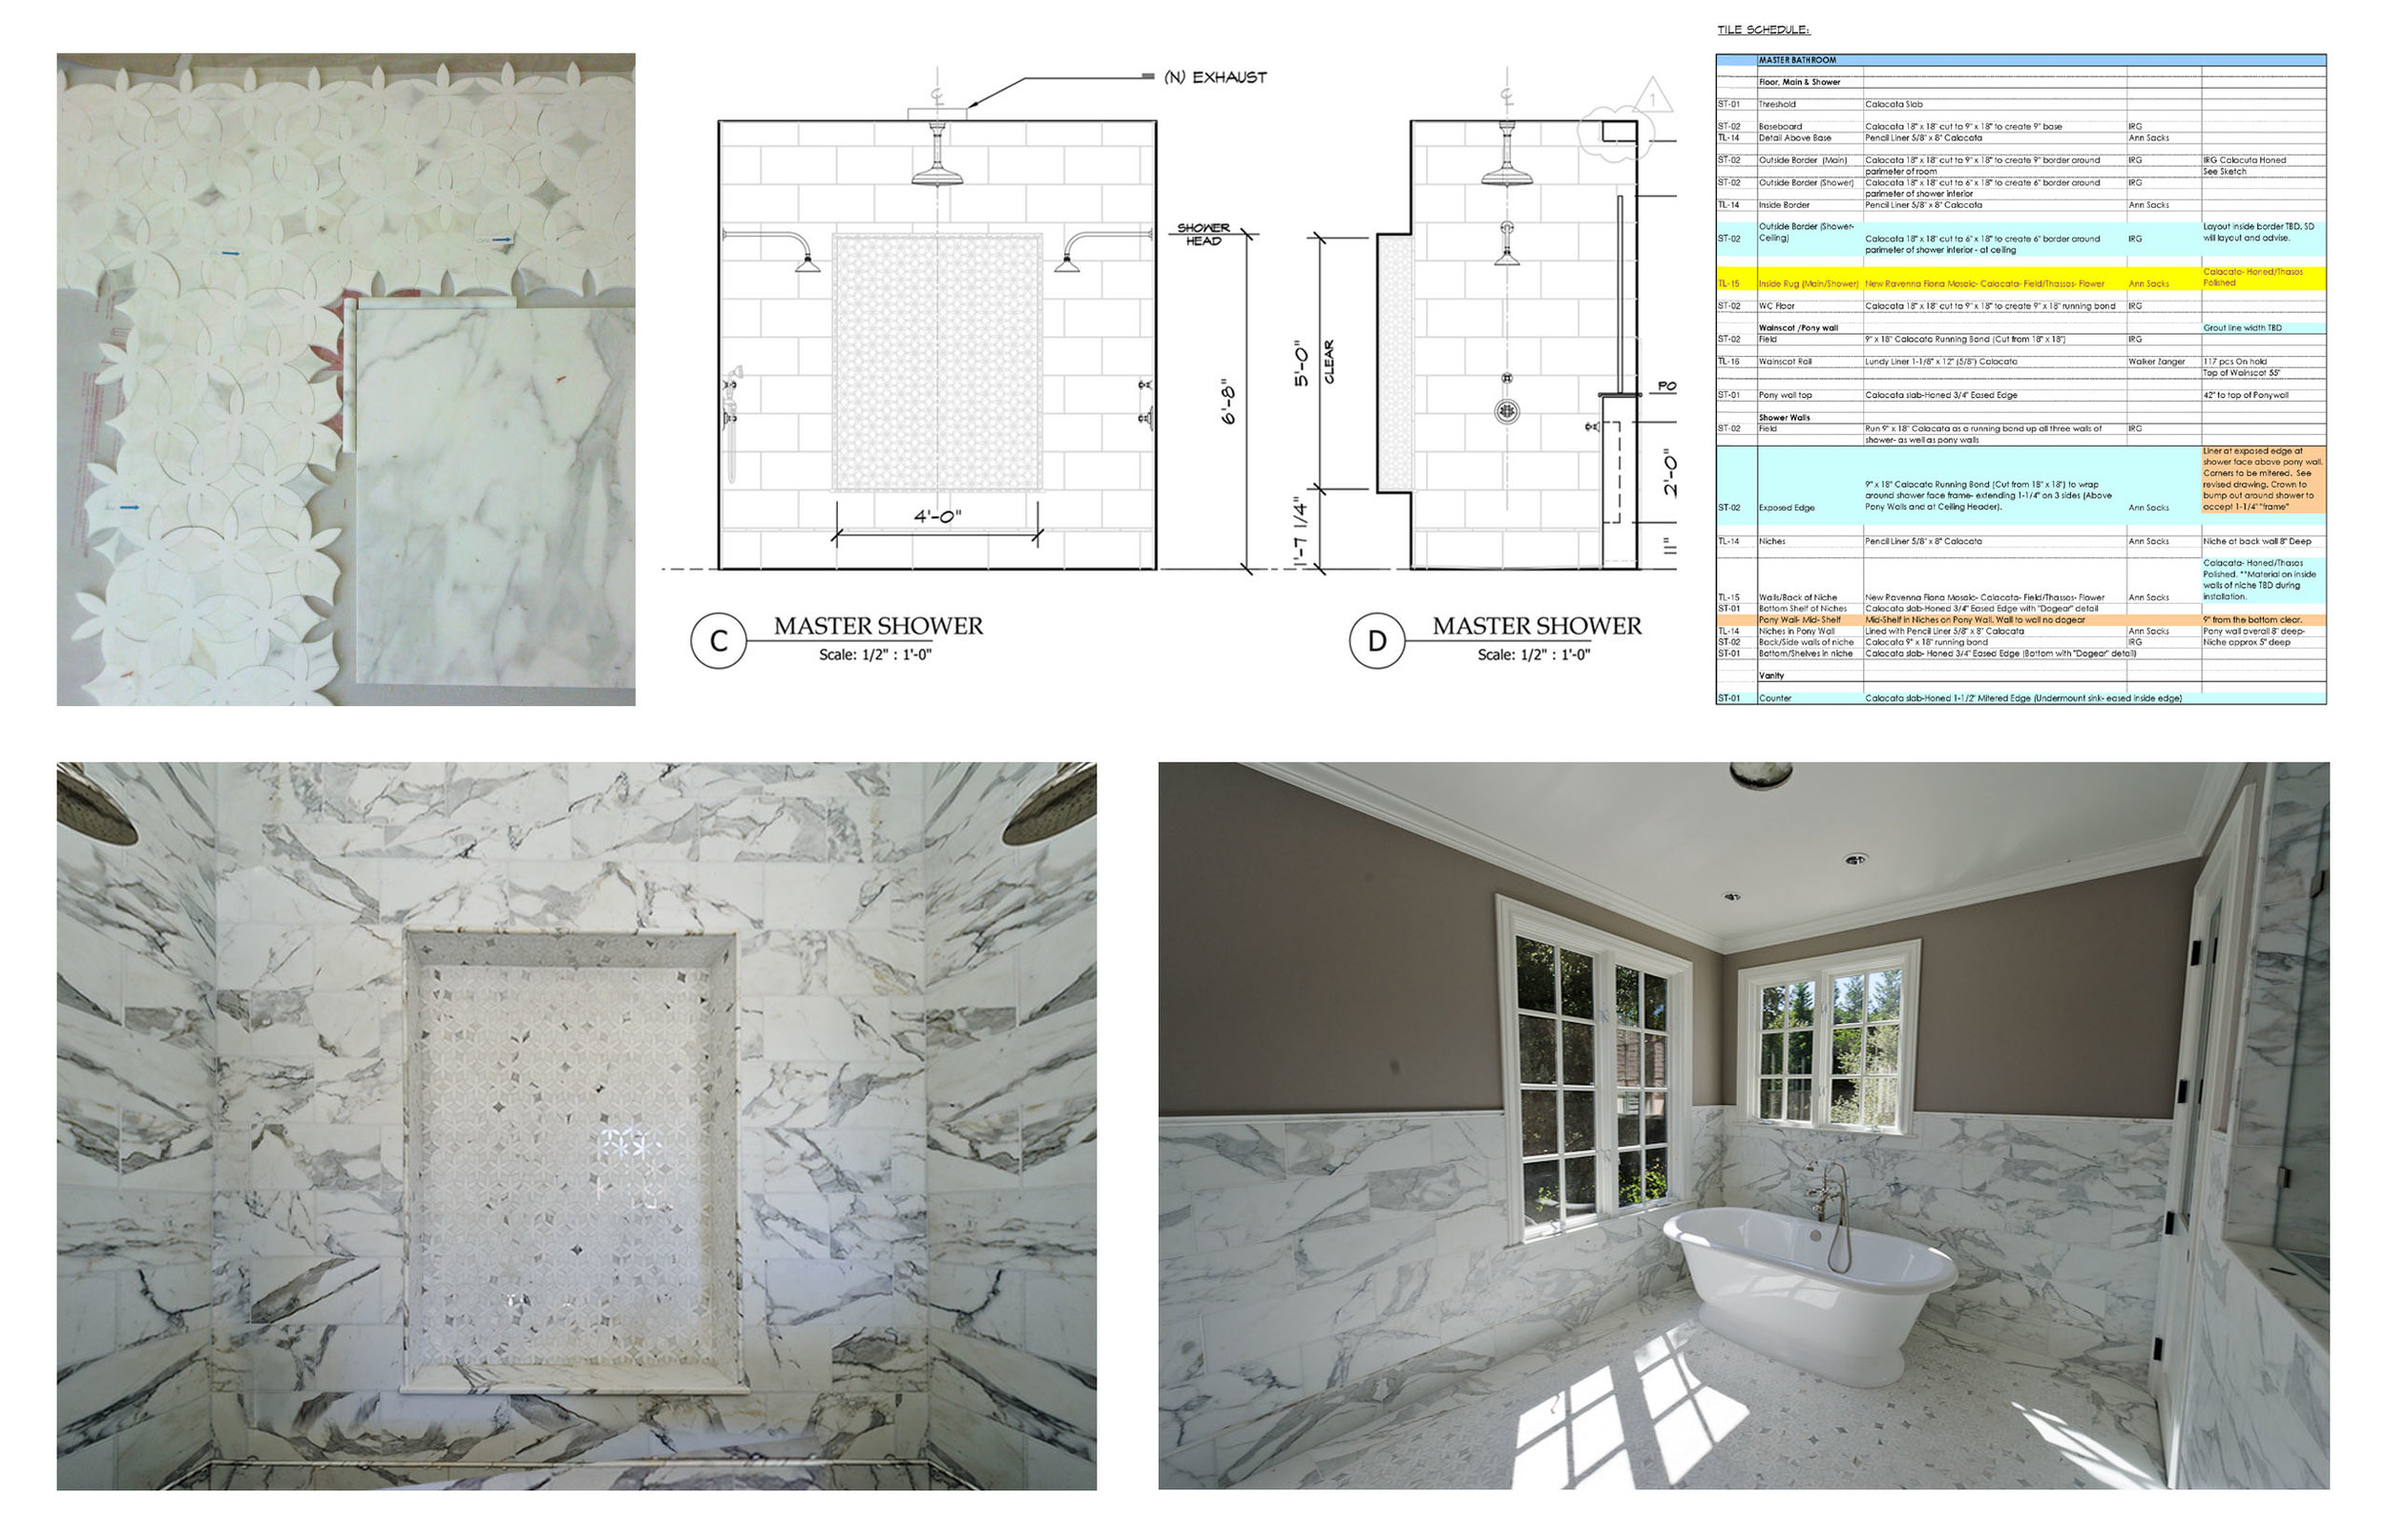 For this   bathroom remodel  , we designed the tile details and provided precise illustrations for the installers to follow.